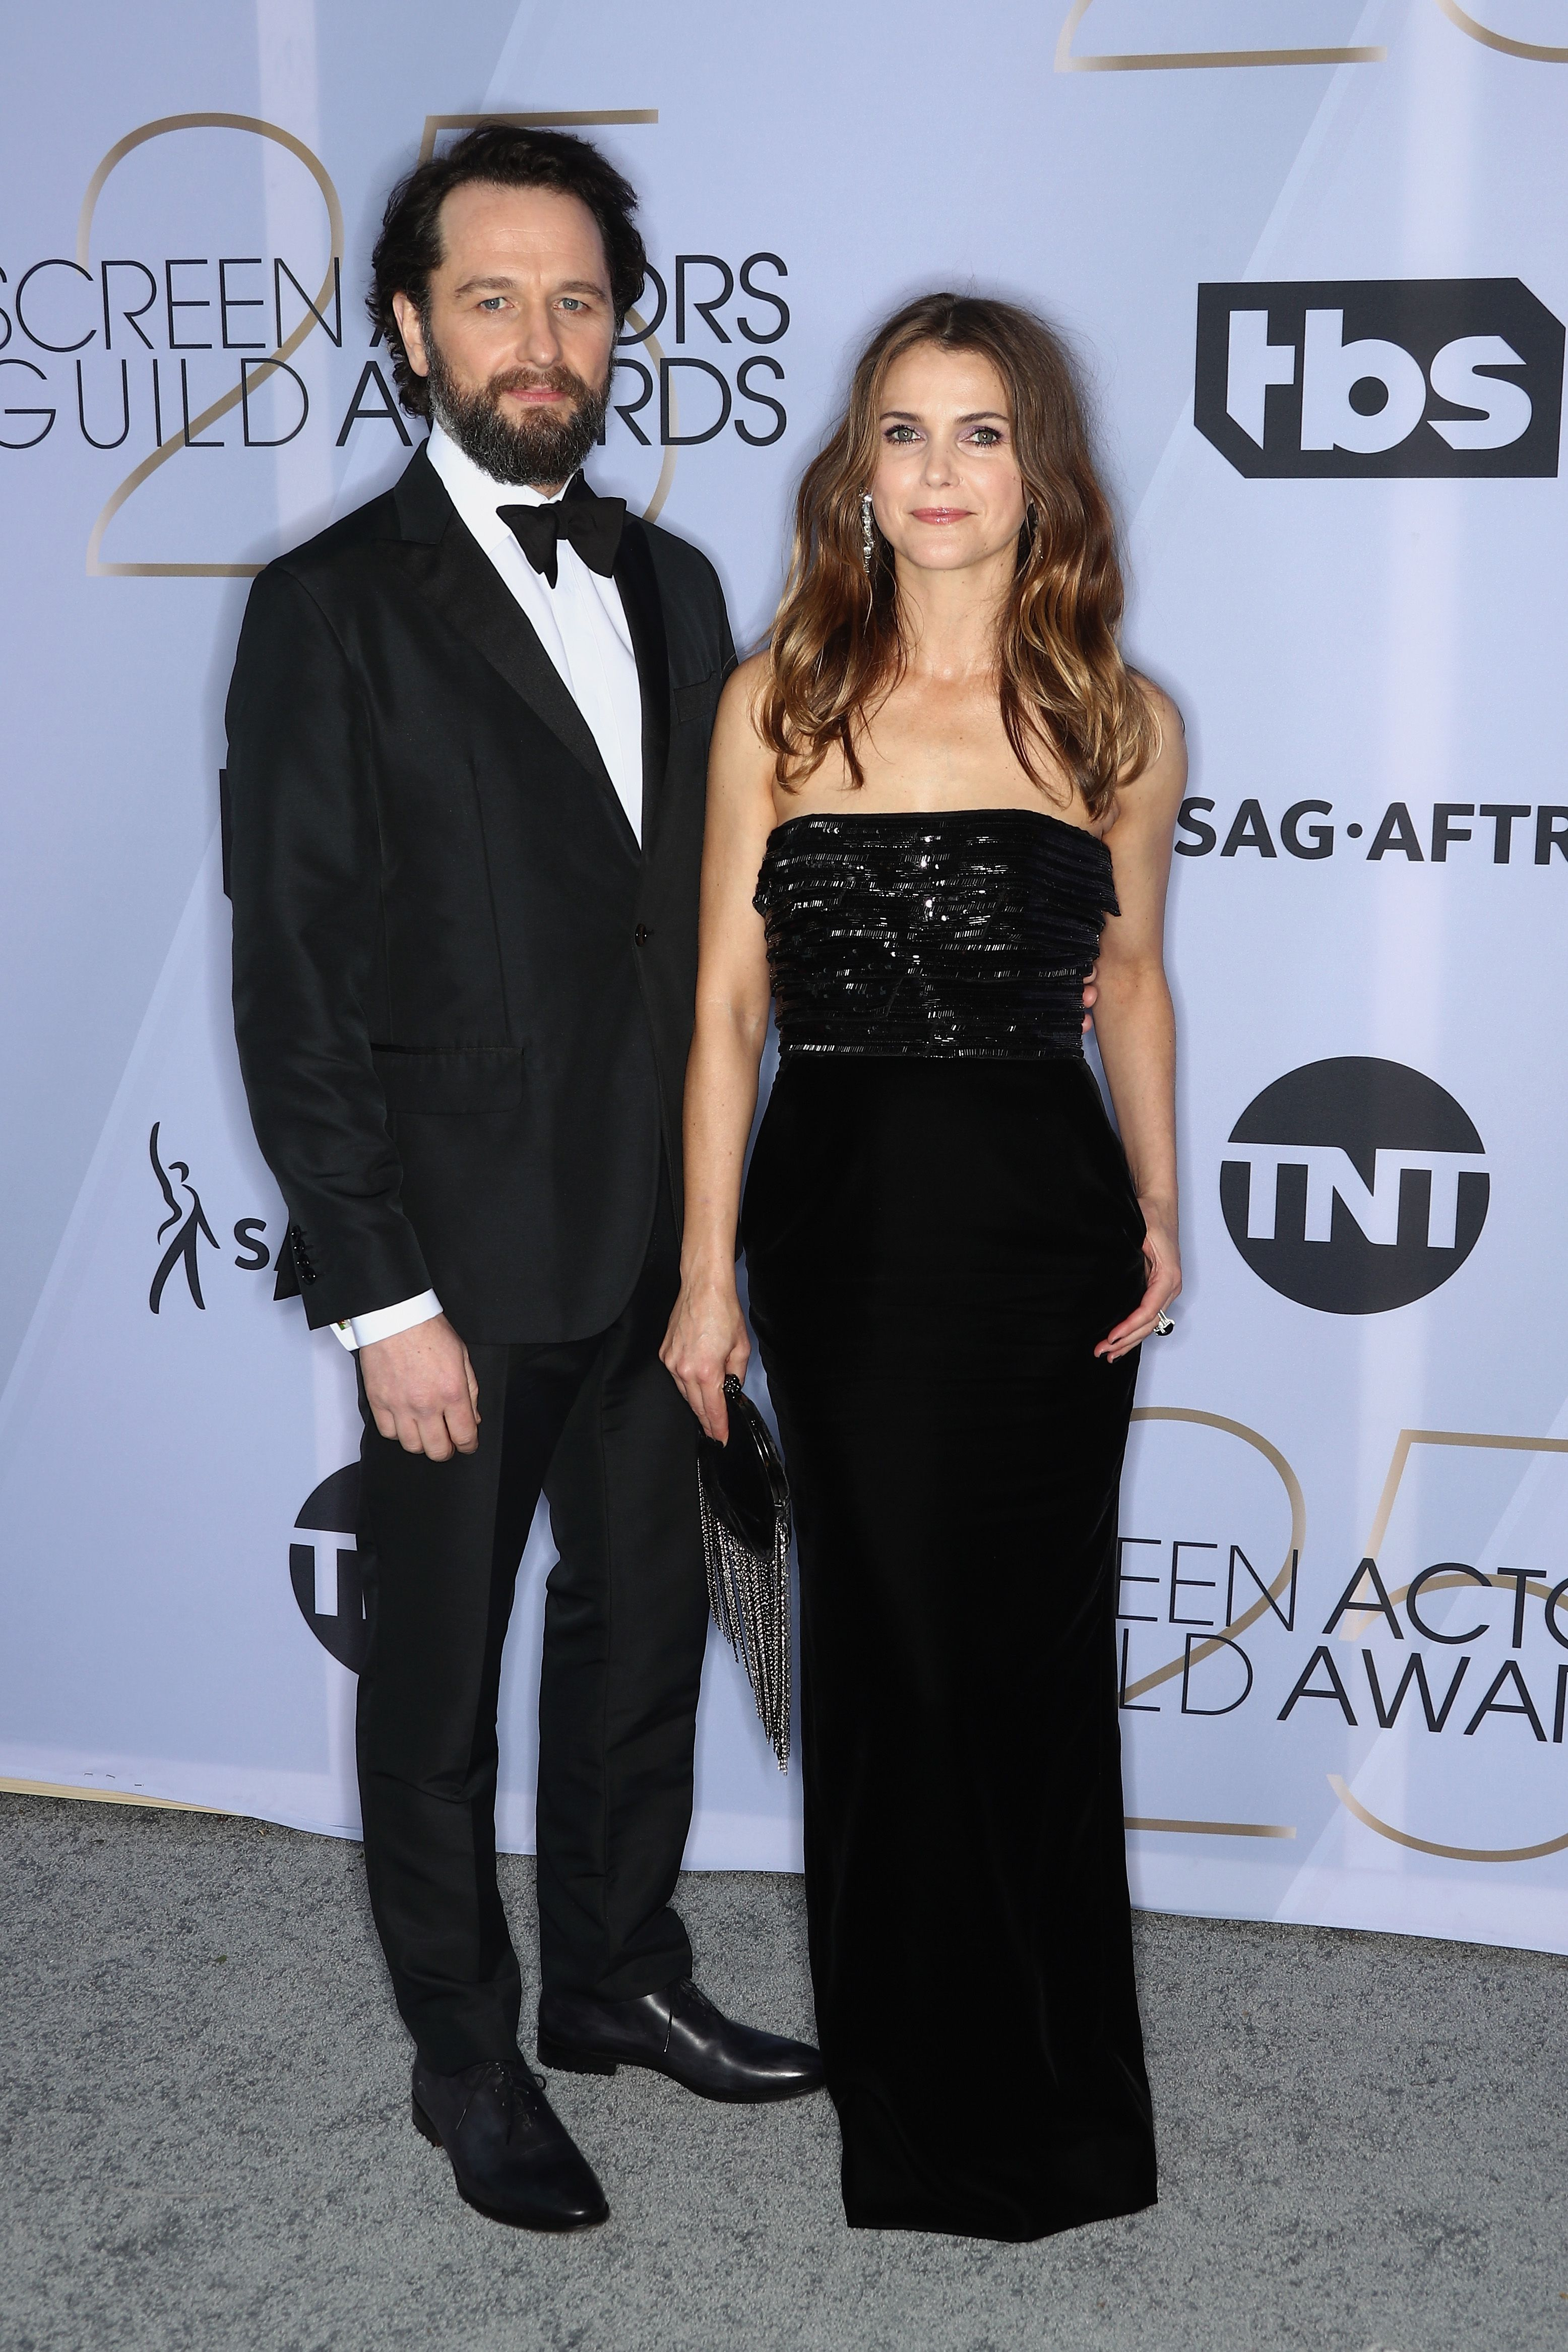 https://hips.hearstapps.com/hmg-prod.s3.amazonaws.com/images/matthew-rhys-and-keri-russell-attend-the-25th-annual-screen-news-photo-1090478838-1548637808.jpg?crop=1xw:1xh;center,top&resize=980:*